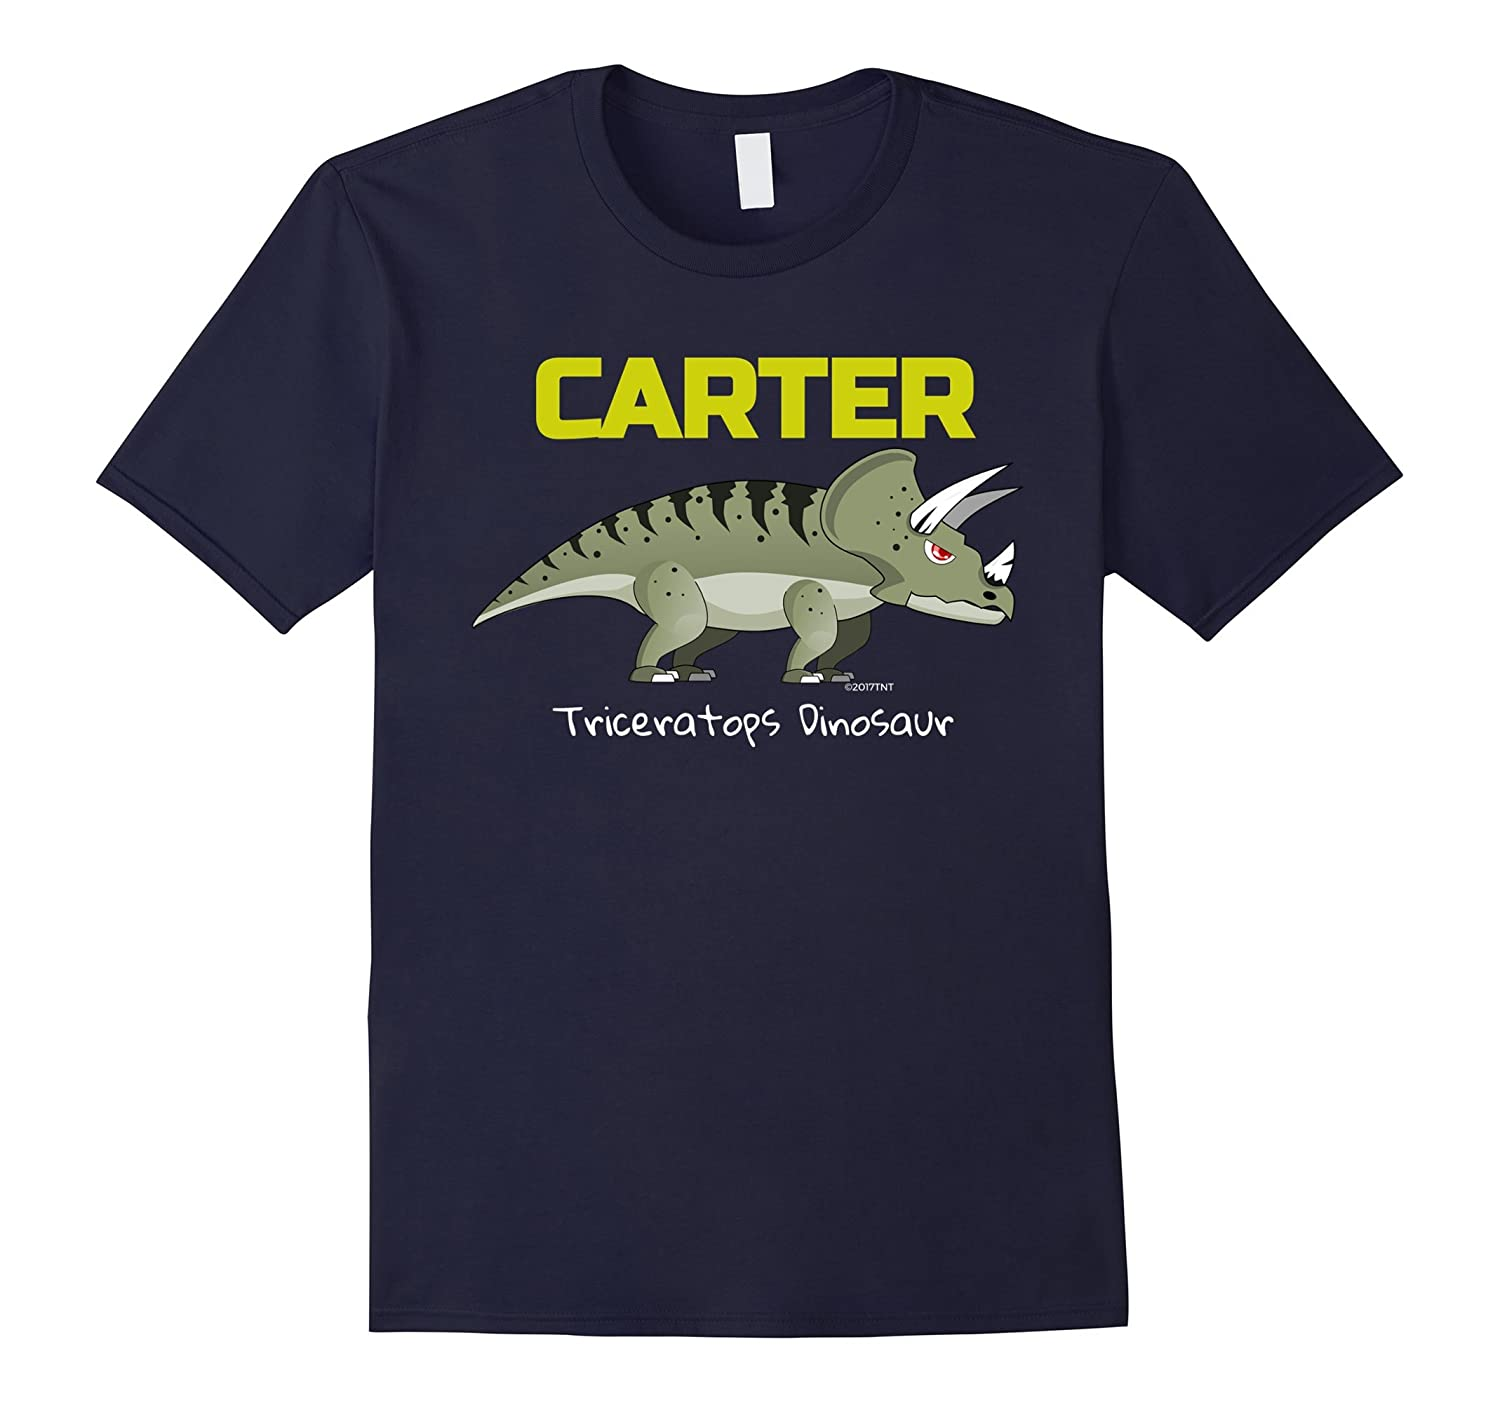 Dinosaur Personalized Name Carter Best Price TShirt-TJ